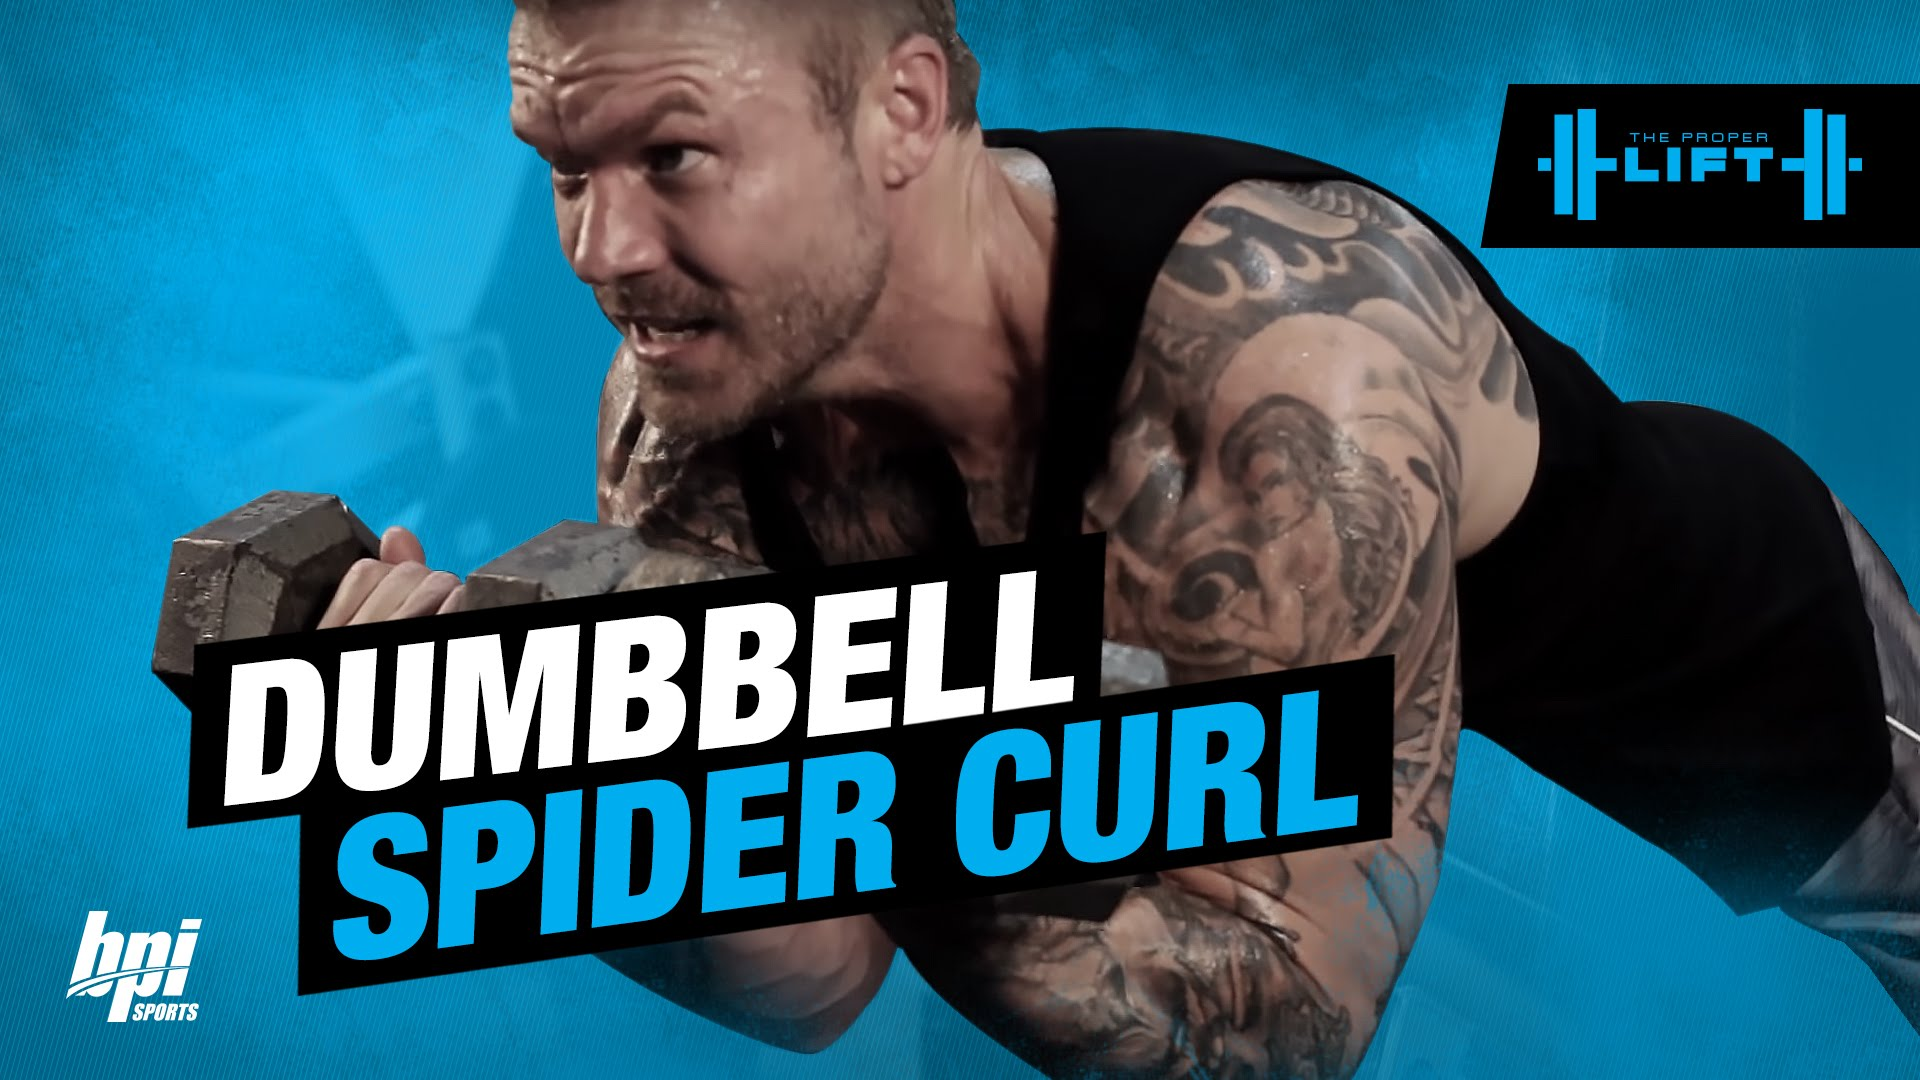 Dumbbell-Spider-Curl-Exercise-The-Proper-Lift-BPI-Sports